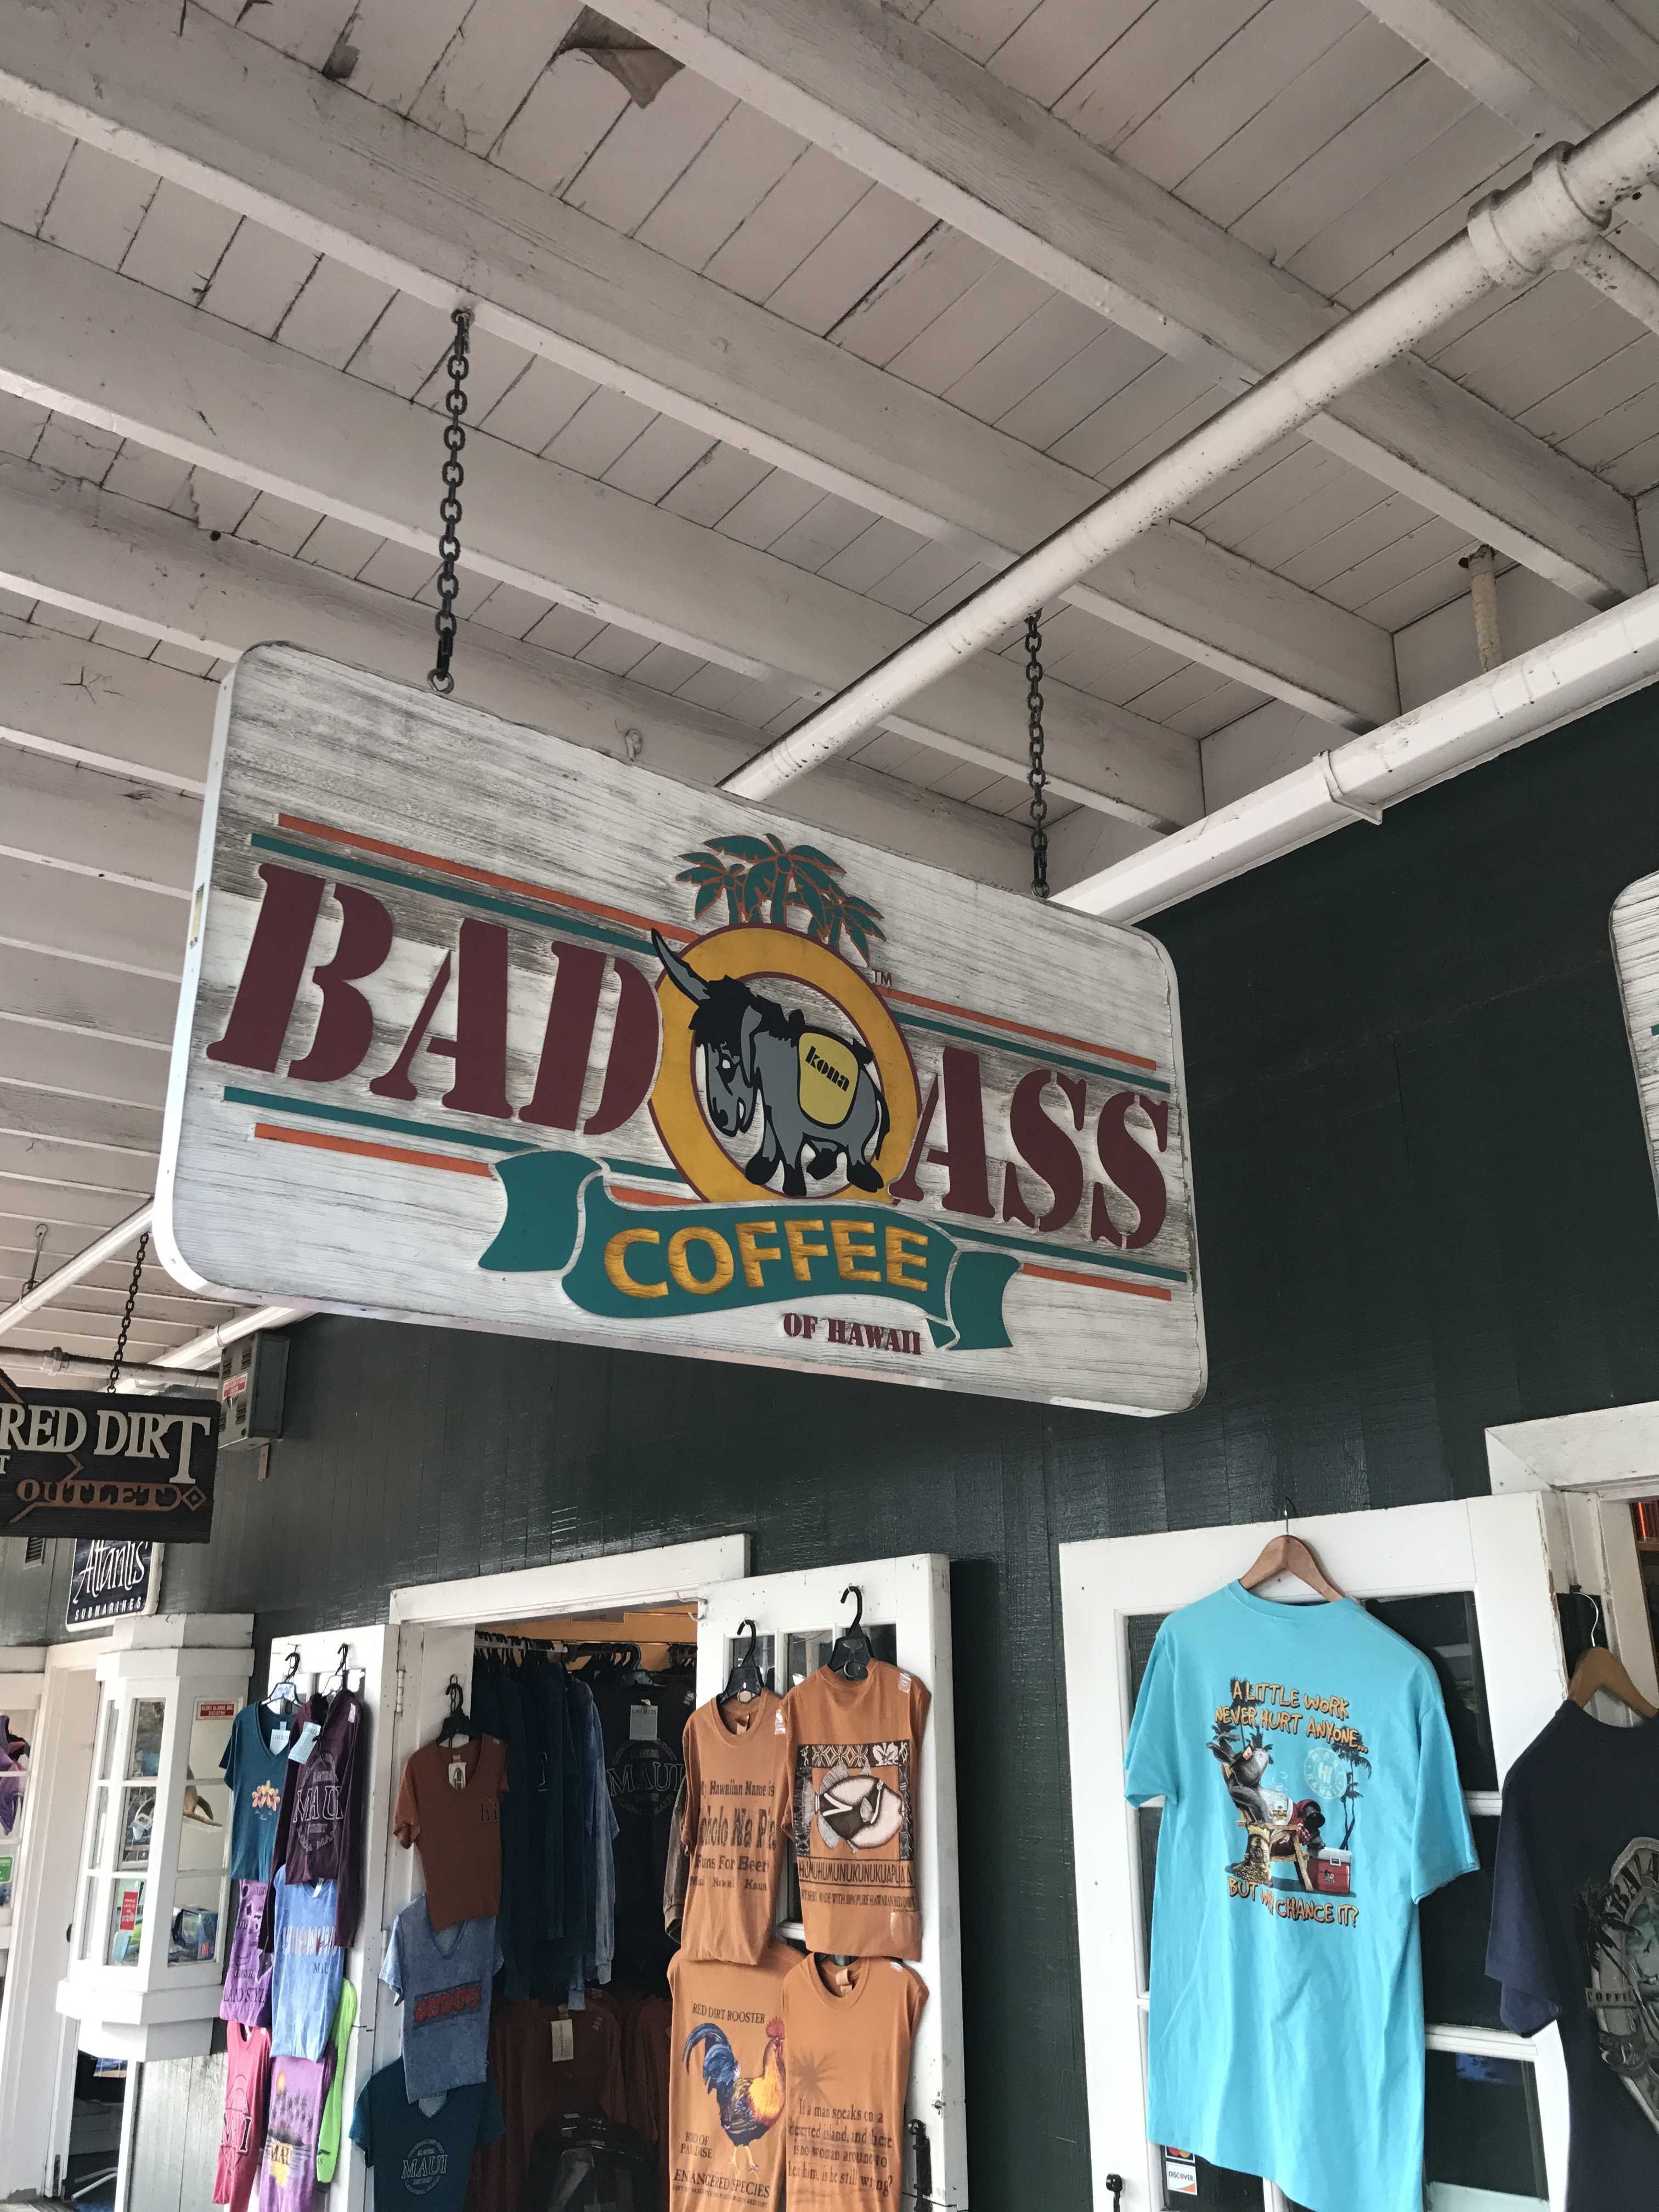 Bad Ass Coffee - Lahaina, Maui - 5 Must Visit Coffee Shops On Maui - Maui Itinerary - Hawaii Coffee - What To Do On Maui - Hawaii Travel Tips - Communikait by Kait Hanson